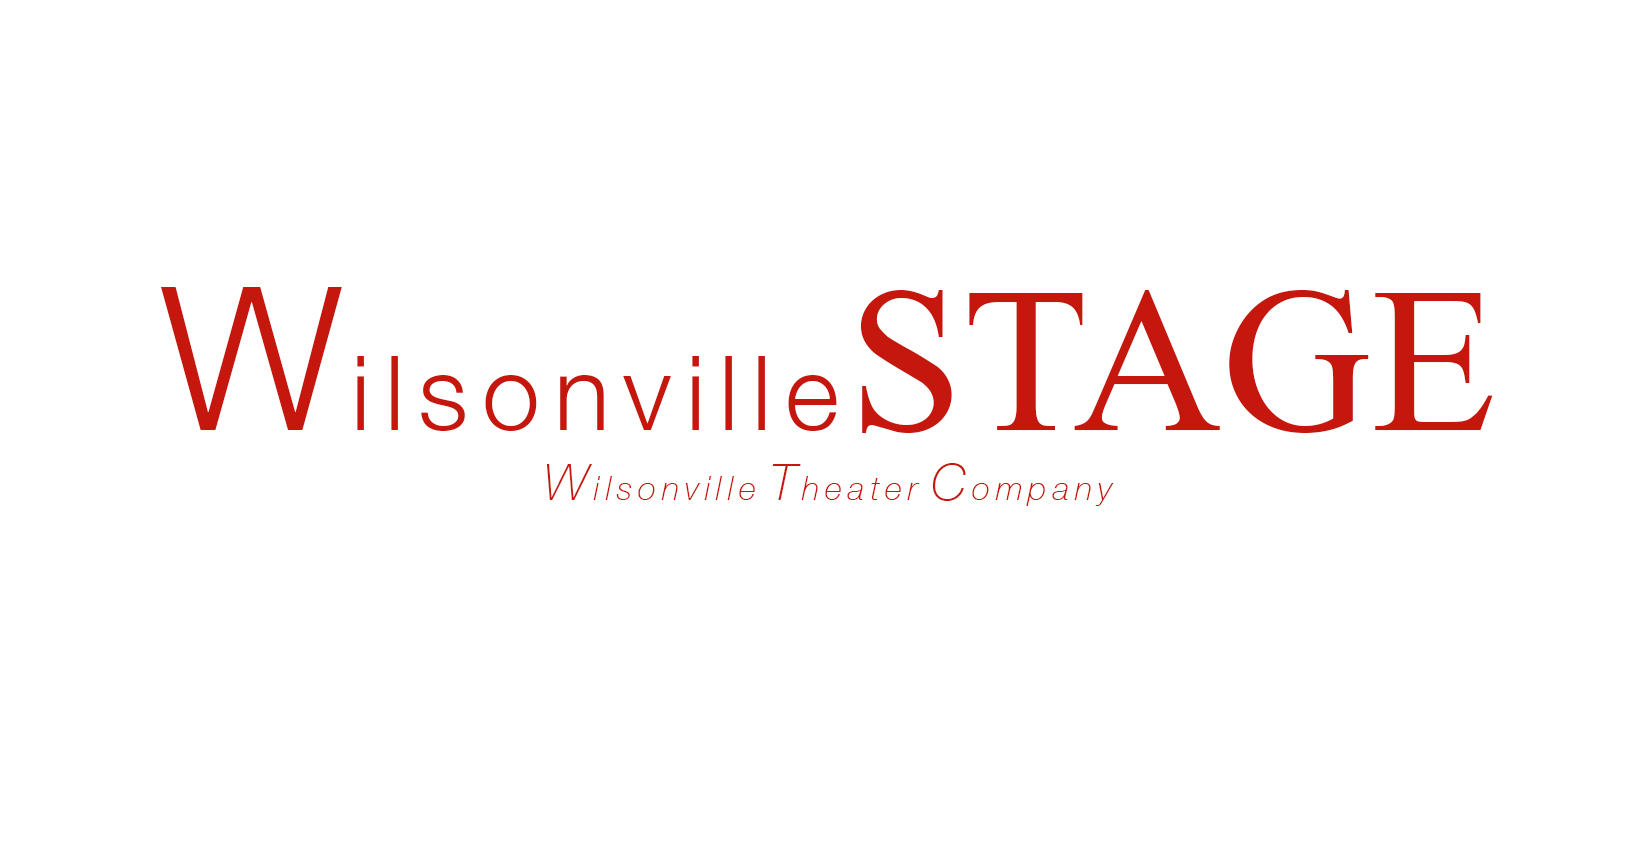 WVStage FB cover.jpg